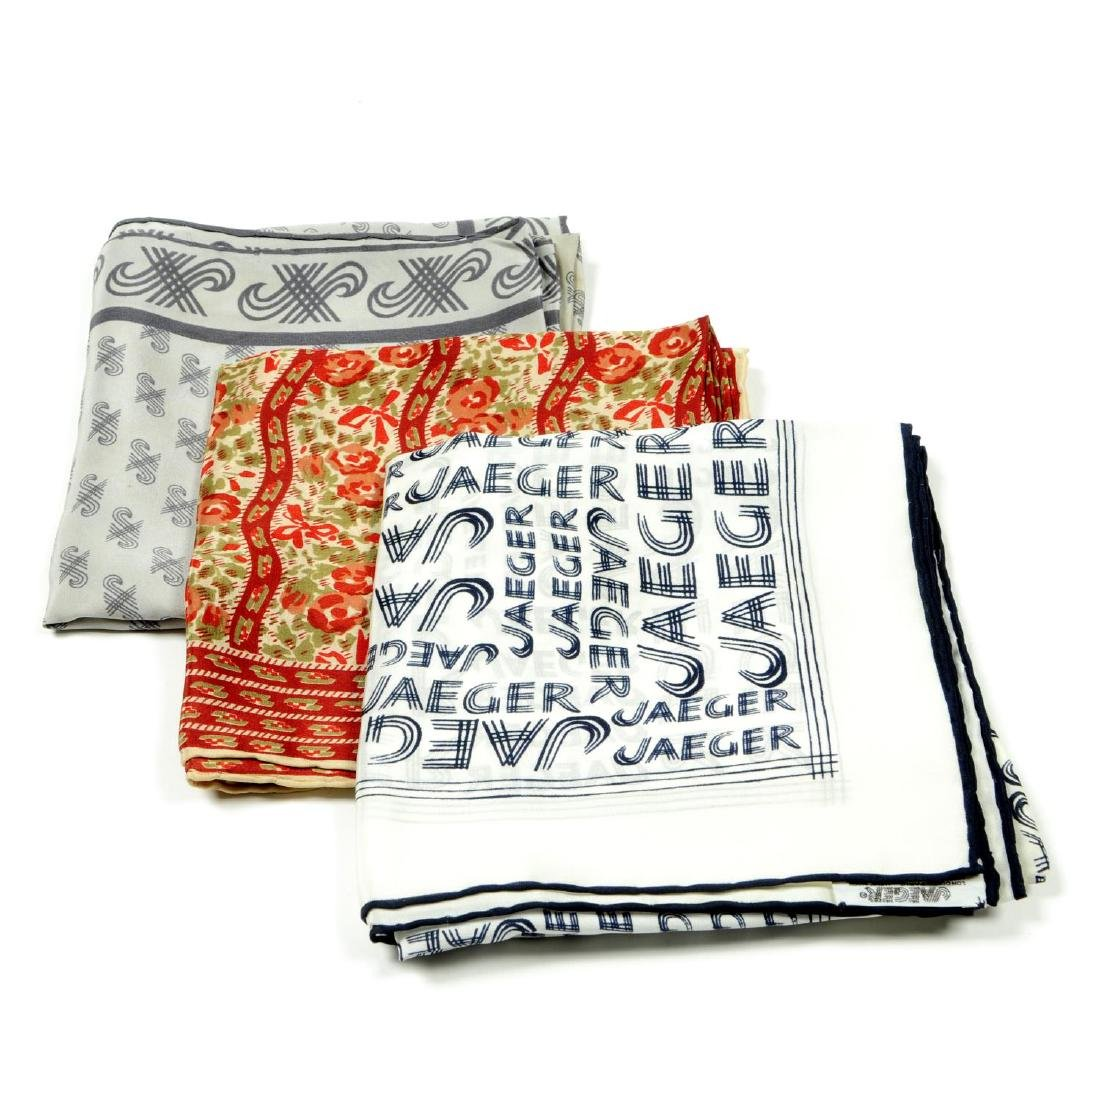 JAEGER - a selection of ten scarves. To include a white